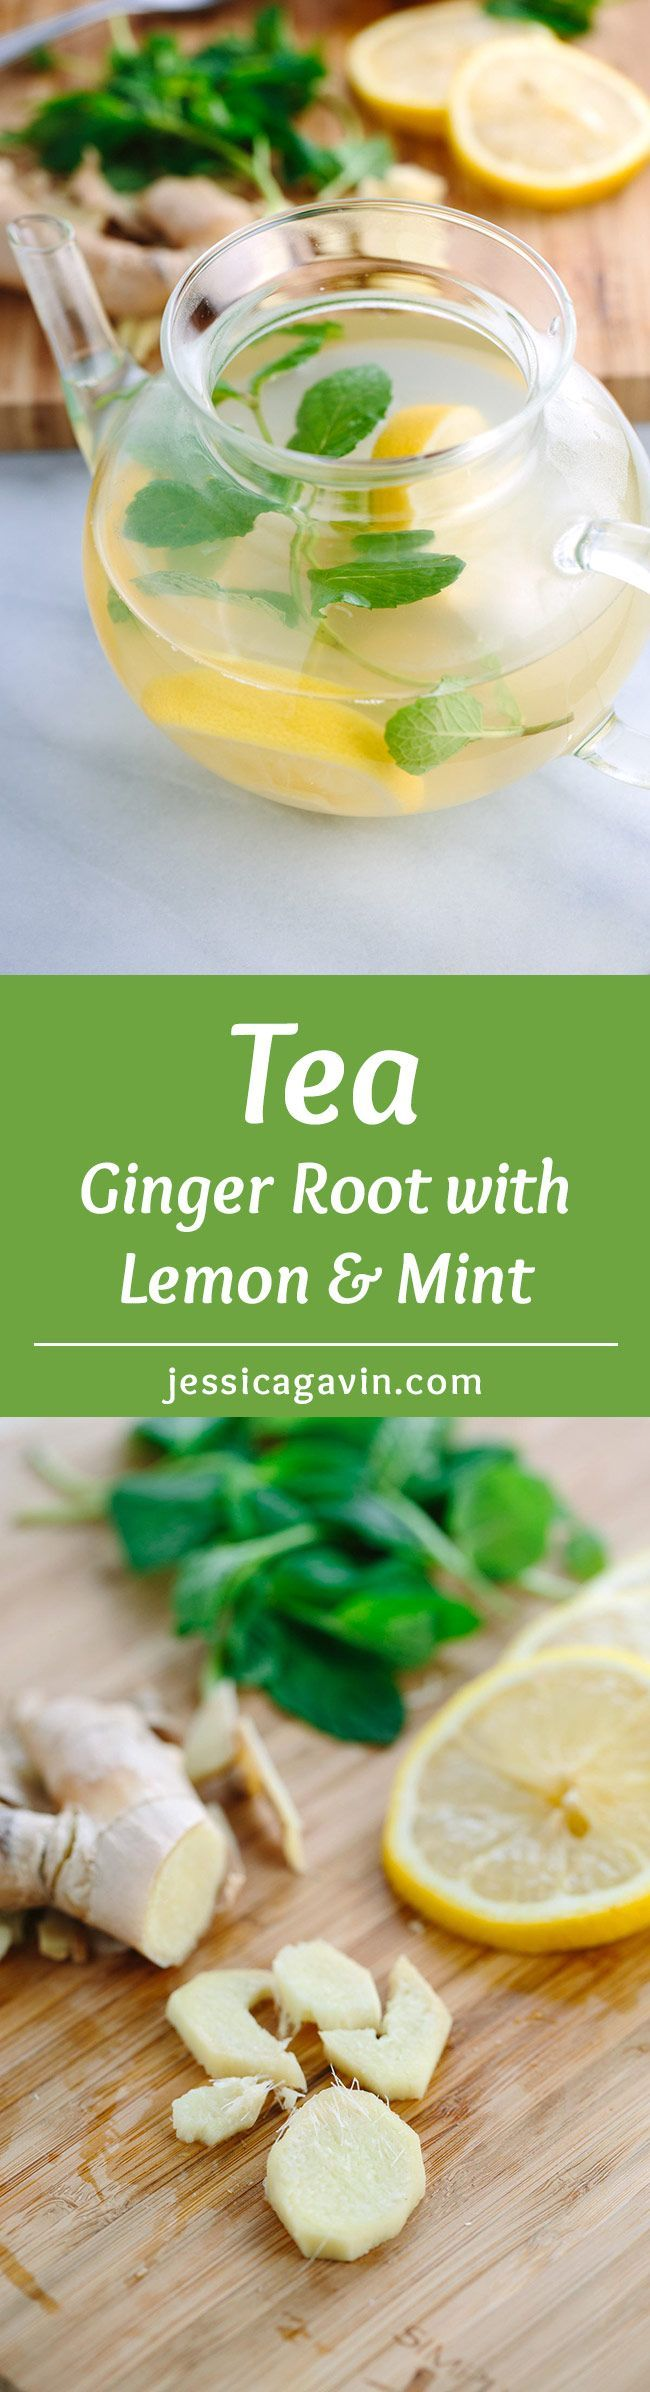 Ginger Root Tea with Lemon and Mint - Three simple ingredients provide a soothing drink any time of day. With this recipe you can make it as a large pot at home, or single serving on the go. | jessicagavin.com